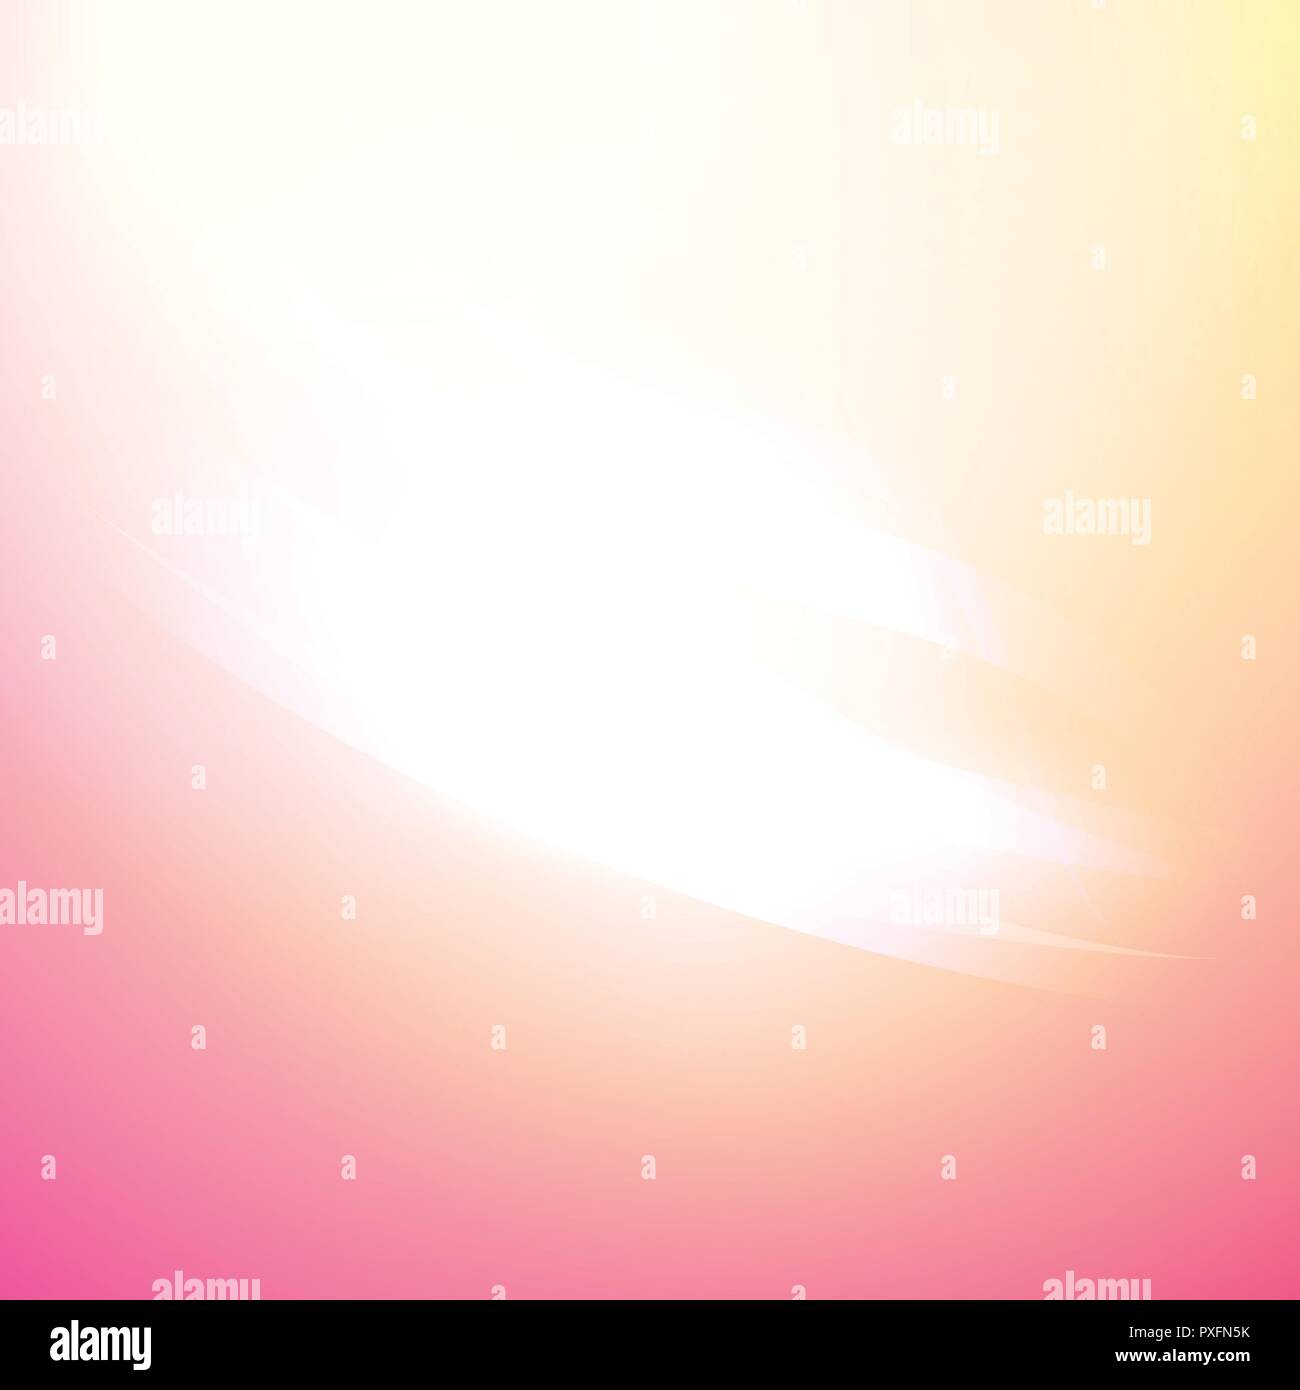 Vector beauty romance shiny Abstract Background - Wonderful background for decorating Weddings - Stock Vector